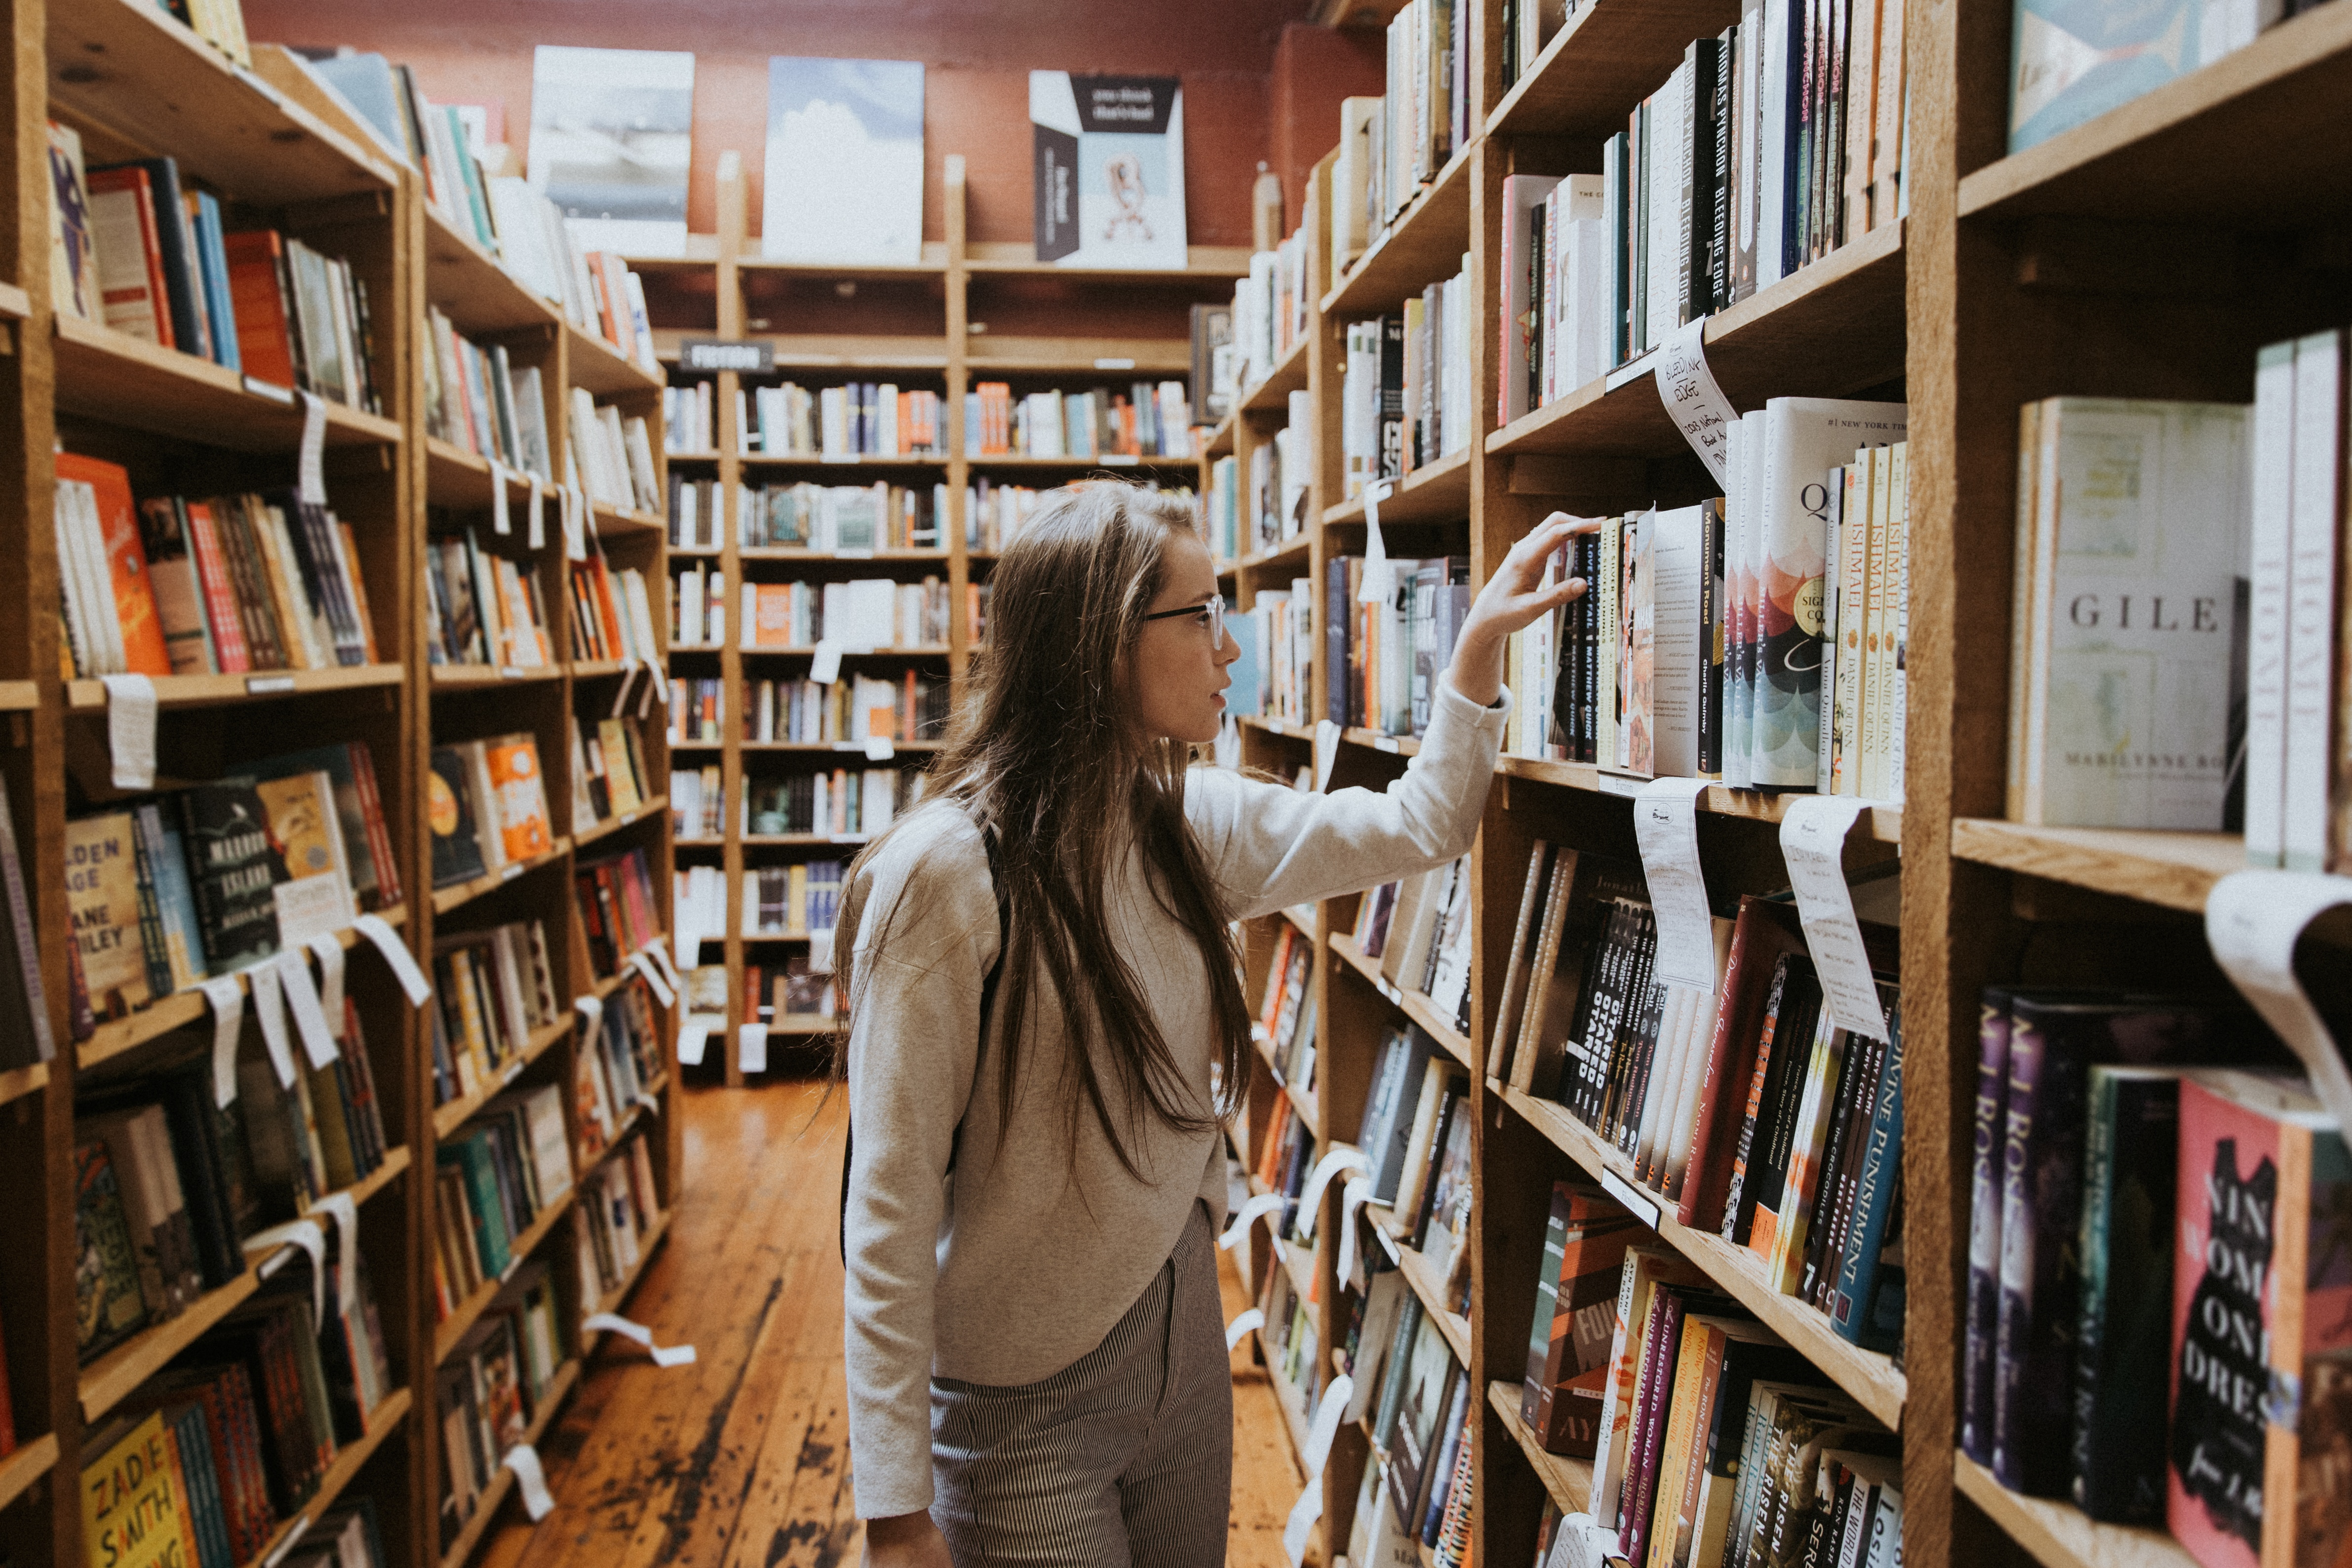 A Woman Browsing Shelves In A Bookstore